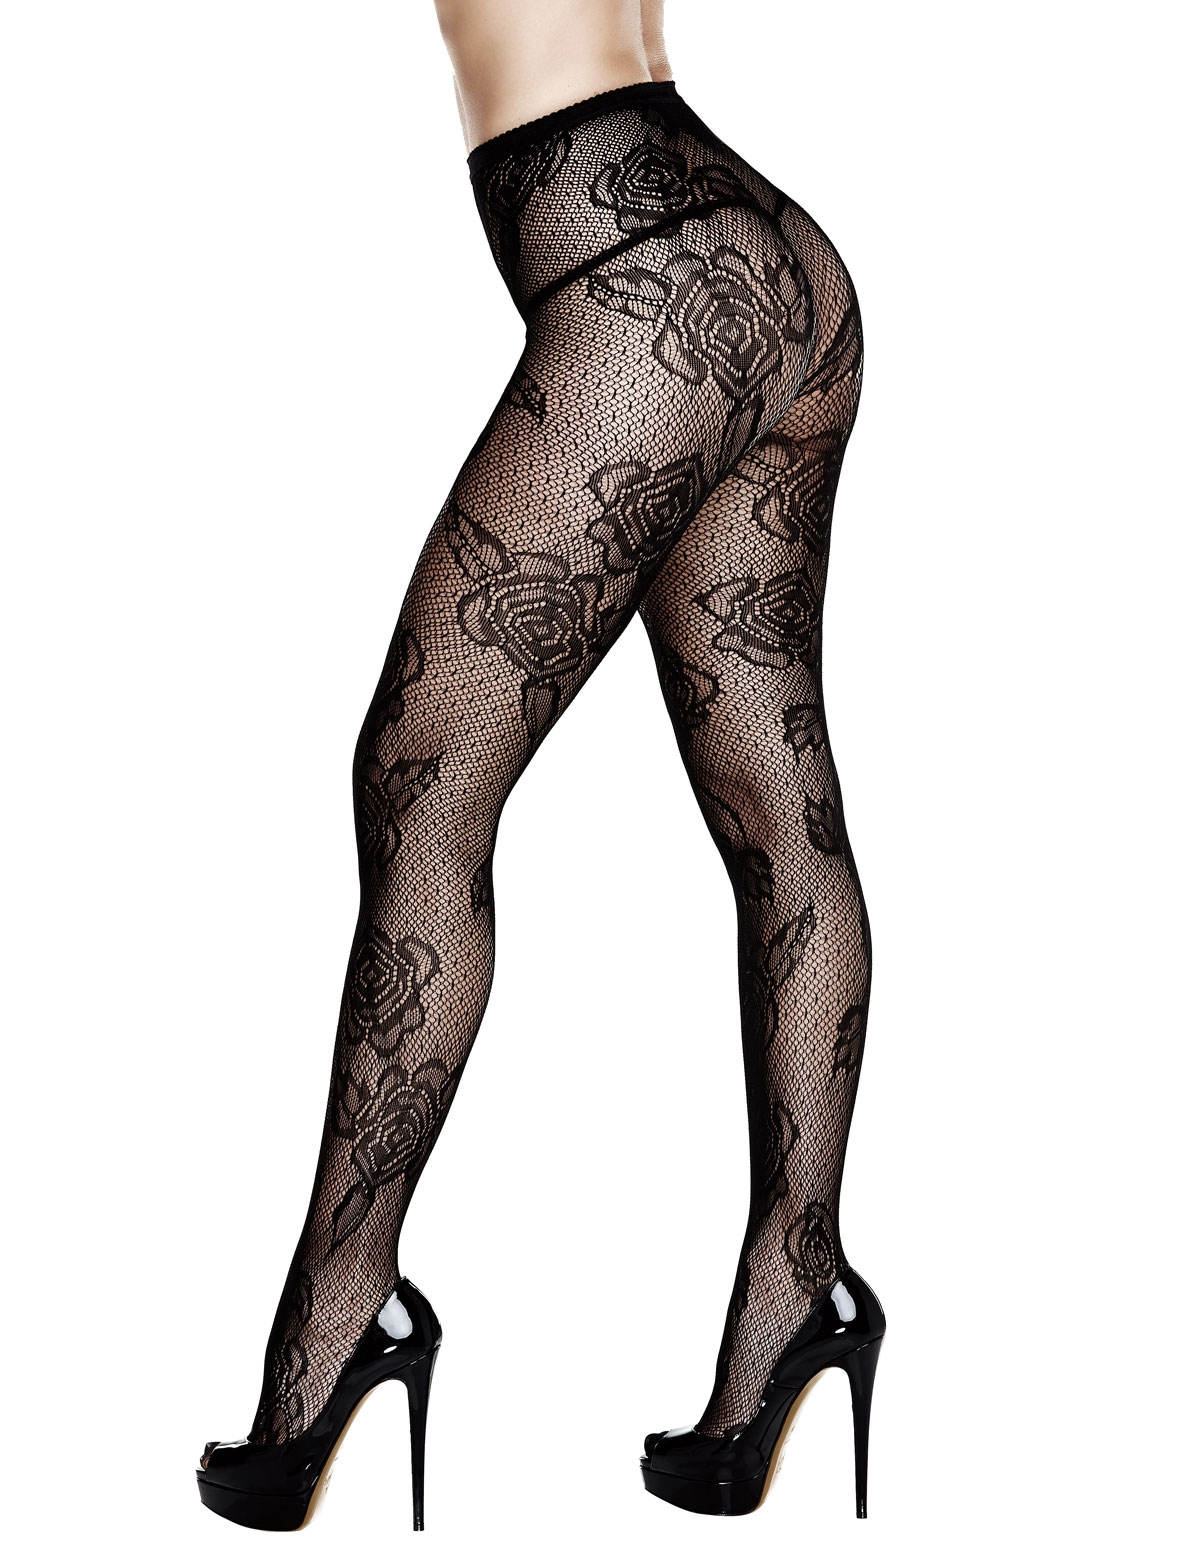 French Rose Plus Size Pantyhose